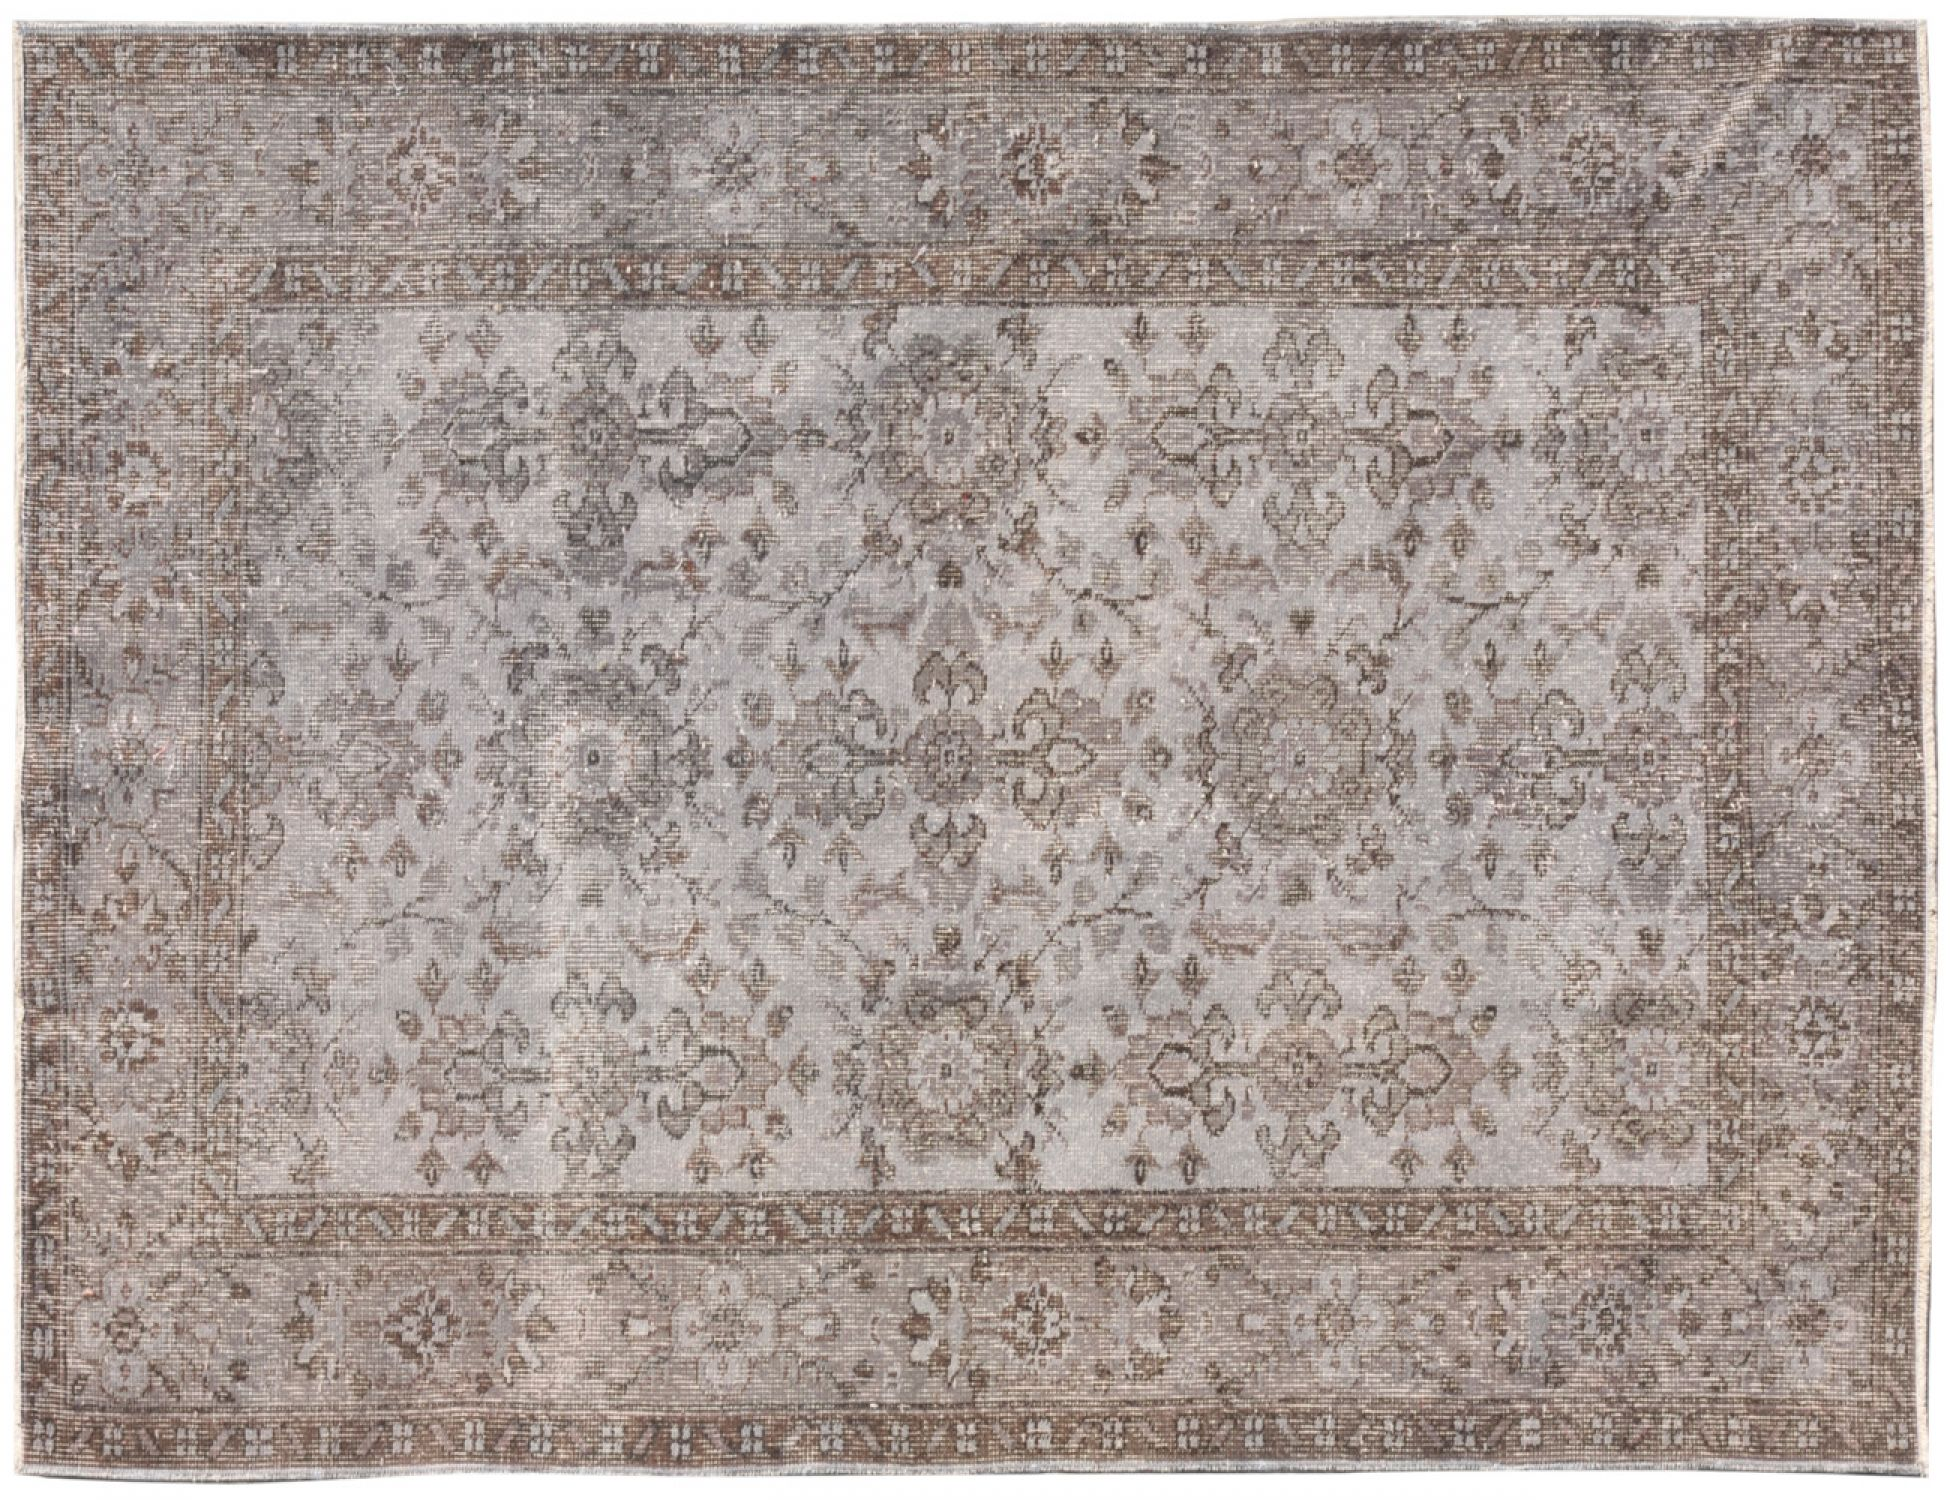 Vintage Carpet  grey <br/>207 x 116 cm